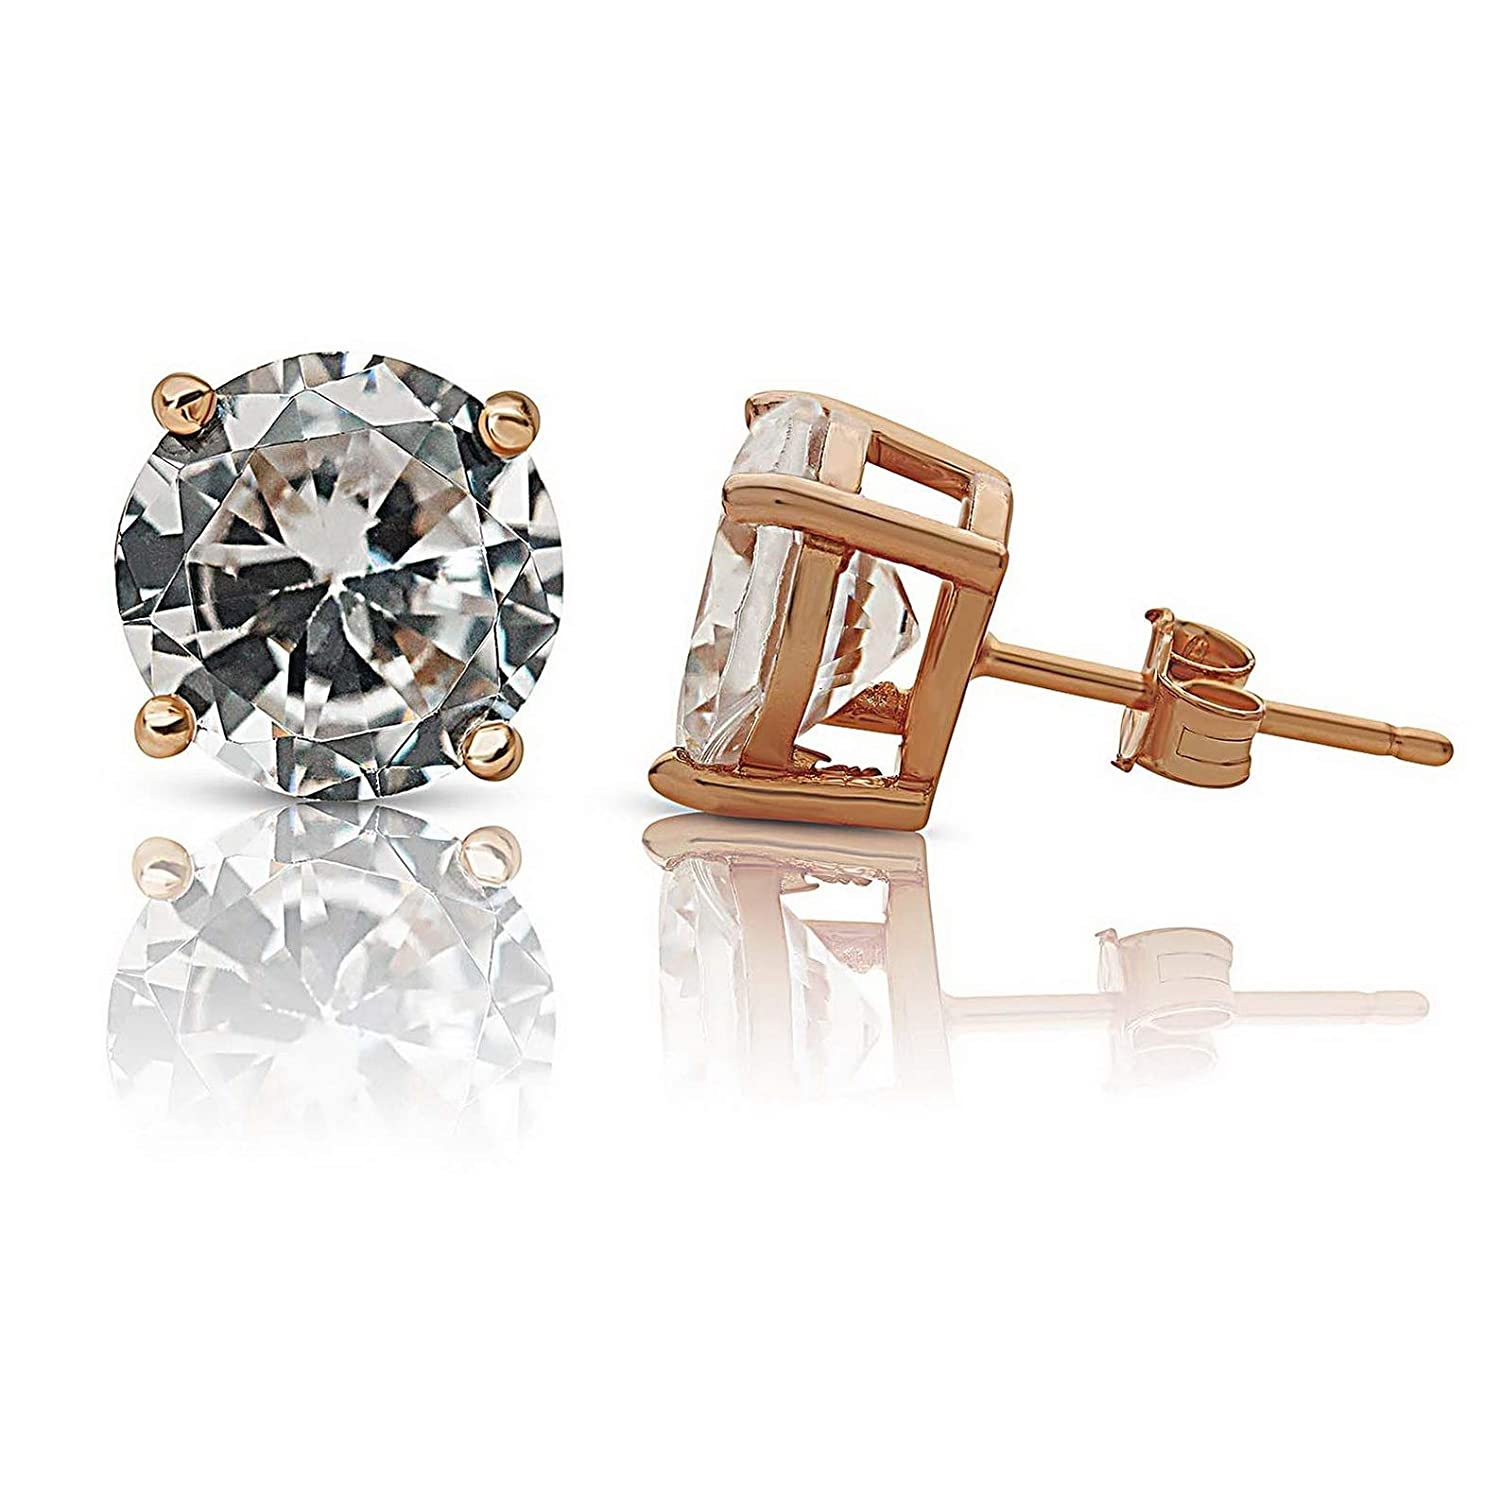 Model ERRNGS 13420 9mm 3XL Large Campton Rose Gold Plated Round Clear White Sterling Silver CZ Stud Earrings